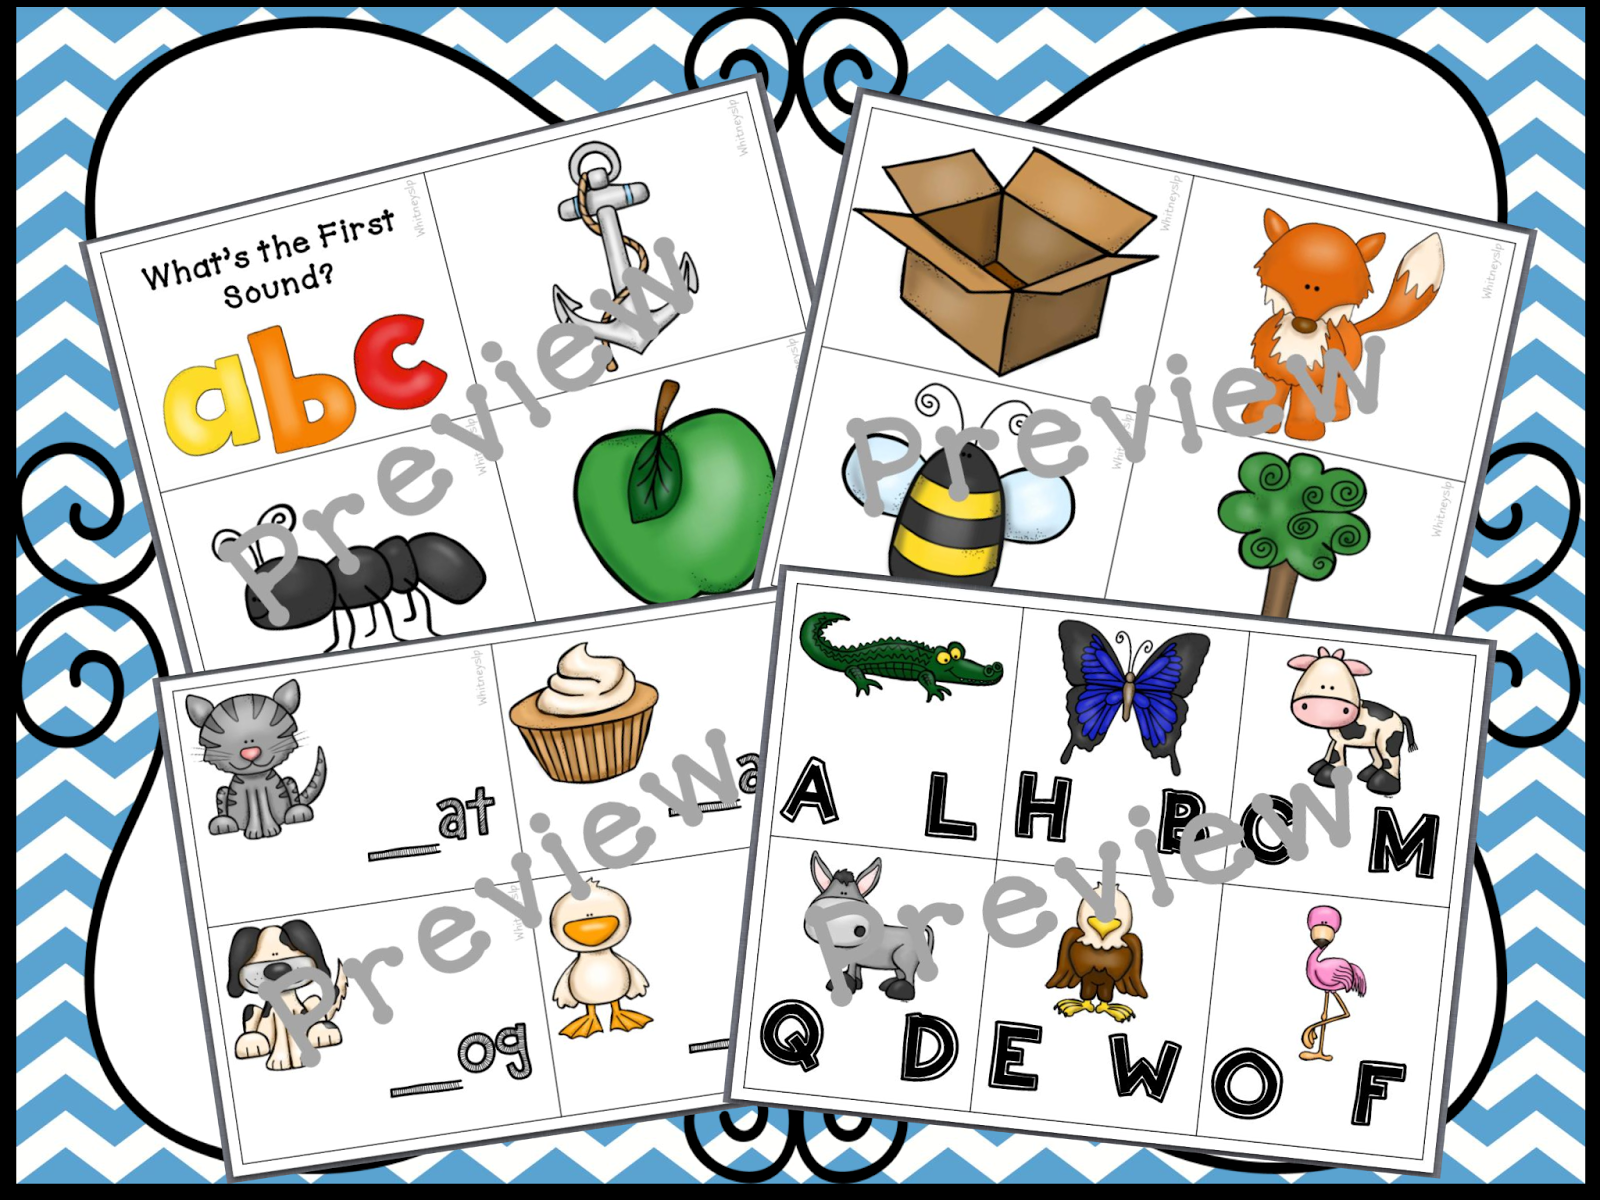 http://www.teacherspayteachers.com/Product/Alphabet-All-The-Way-Phonological-Awareness-Activities-and-Classroom-Decor-1220620